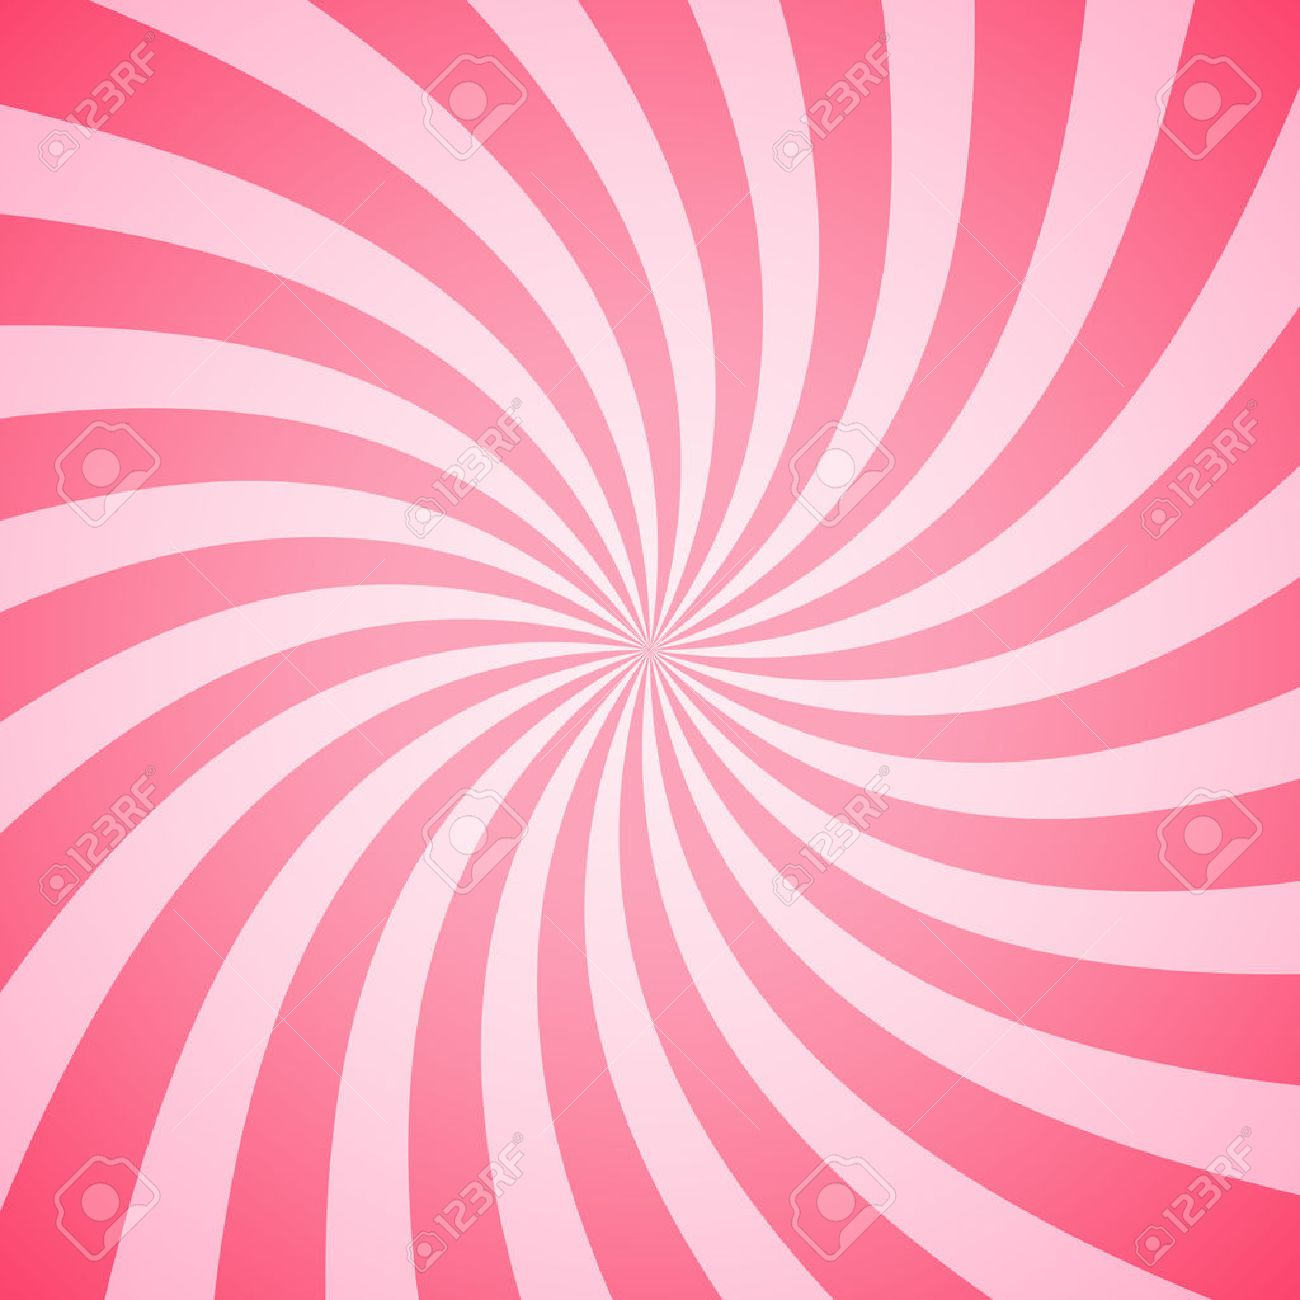 Swirling radial pattern background. Vector illustration for swirl design. Vortex starburst spiral twirl square. Helix rotation rays. Converging psychadelic scalable stripes. Fun sun light beams. - 53984904